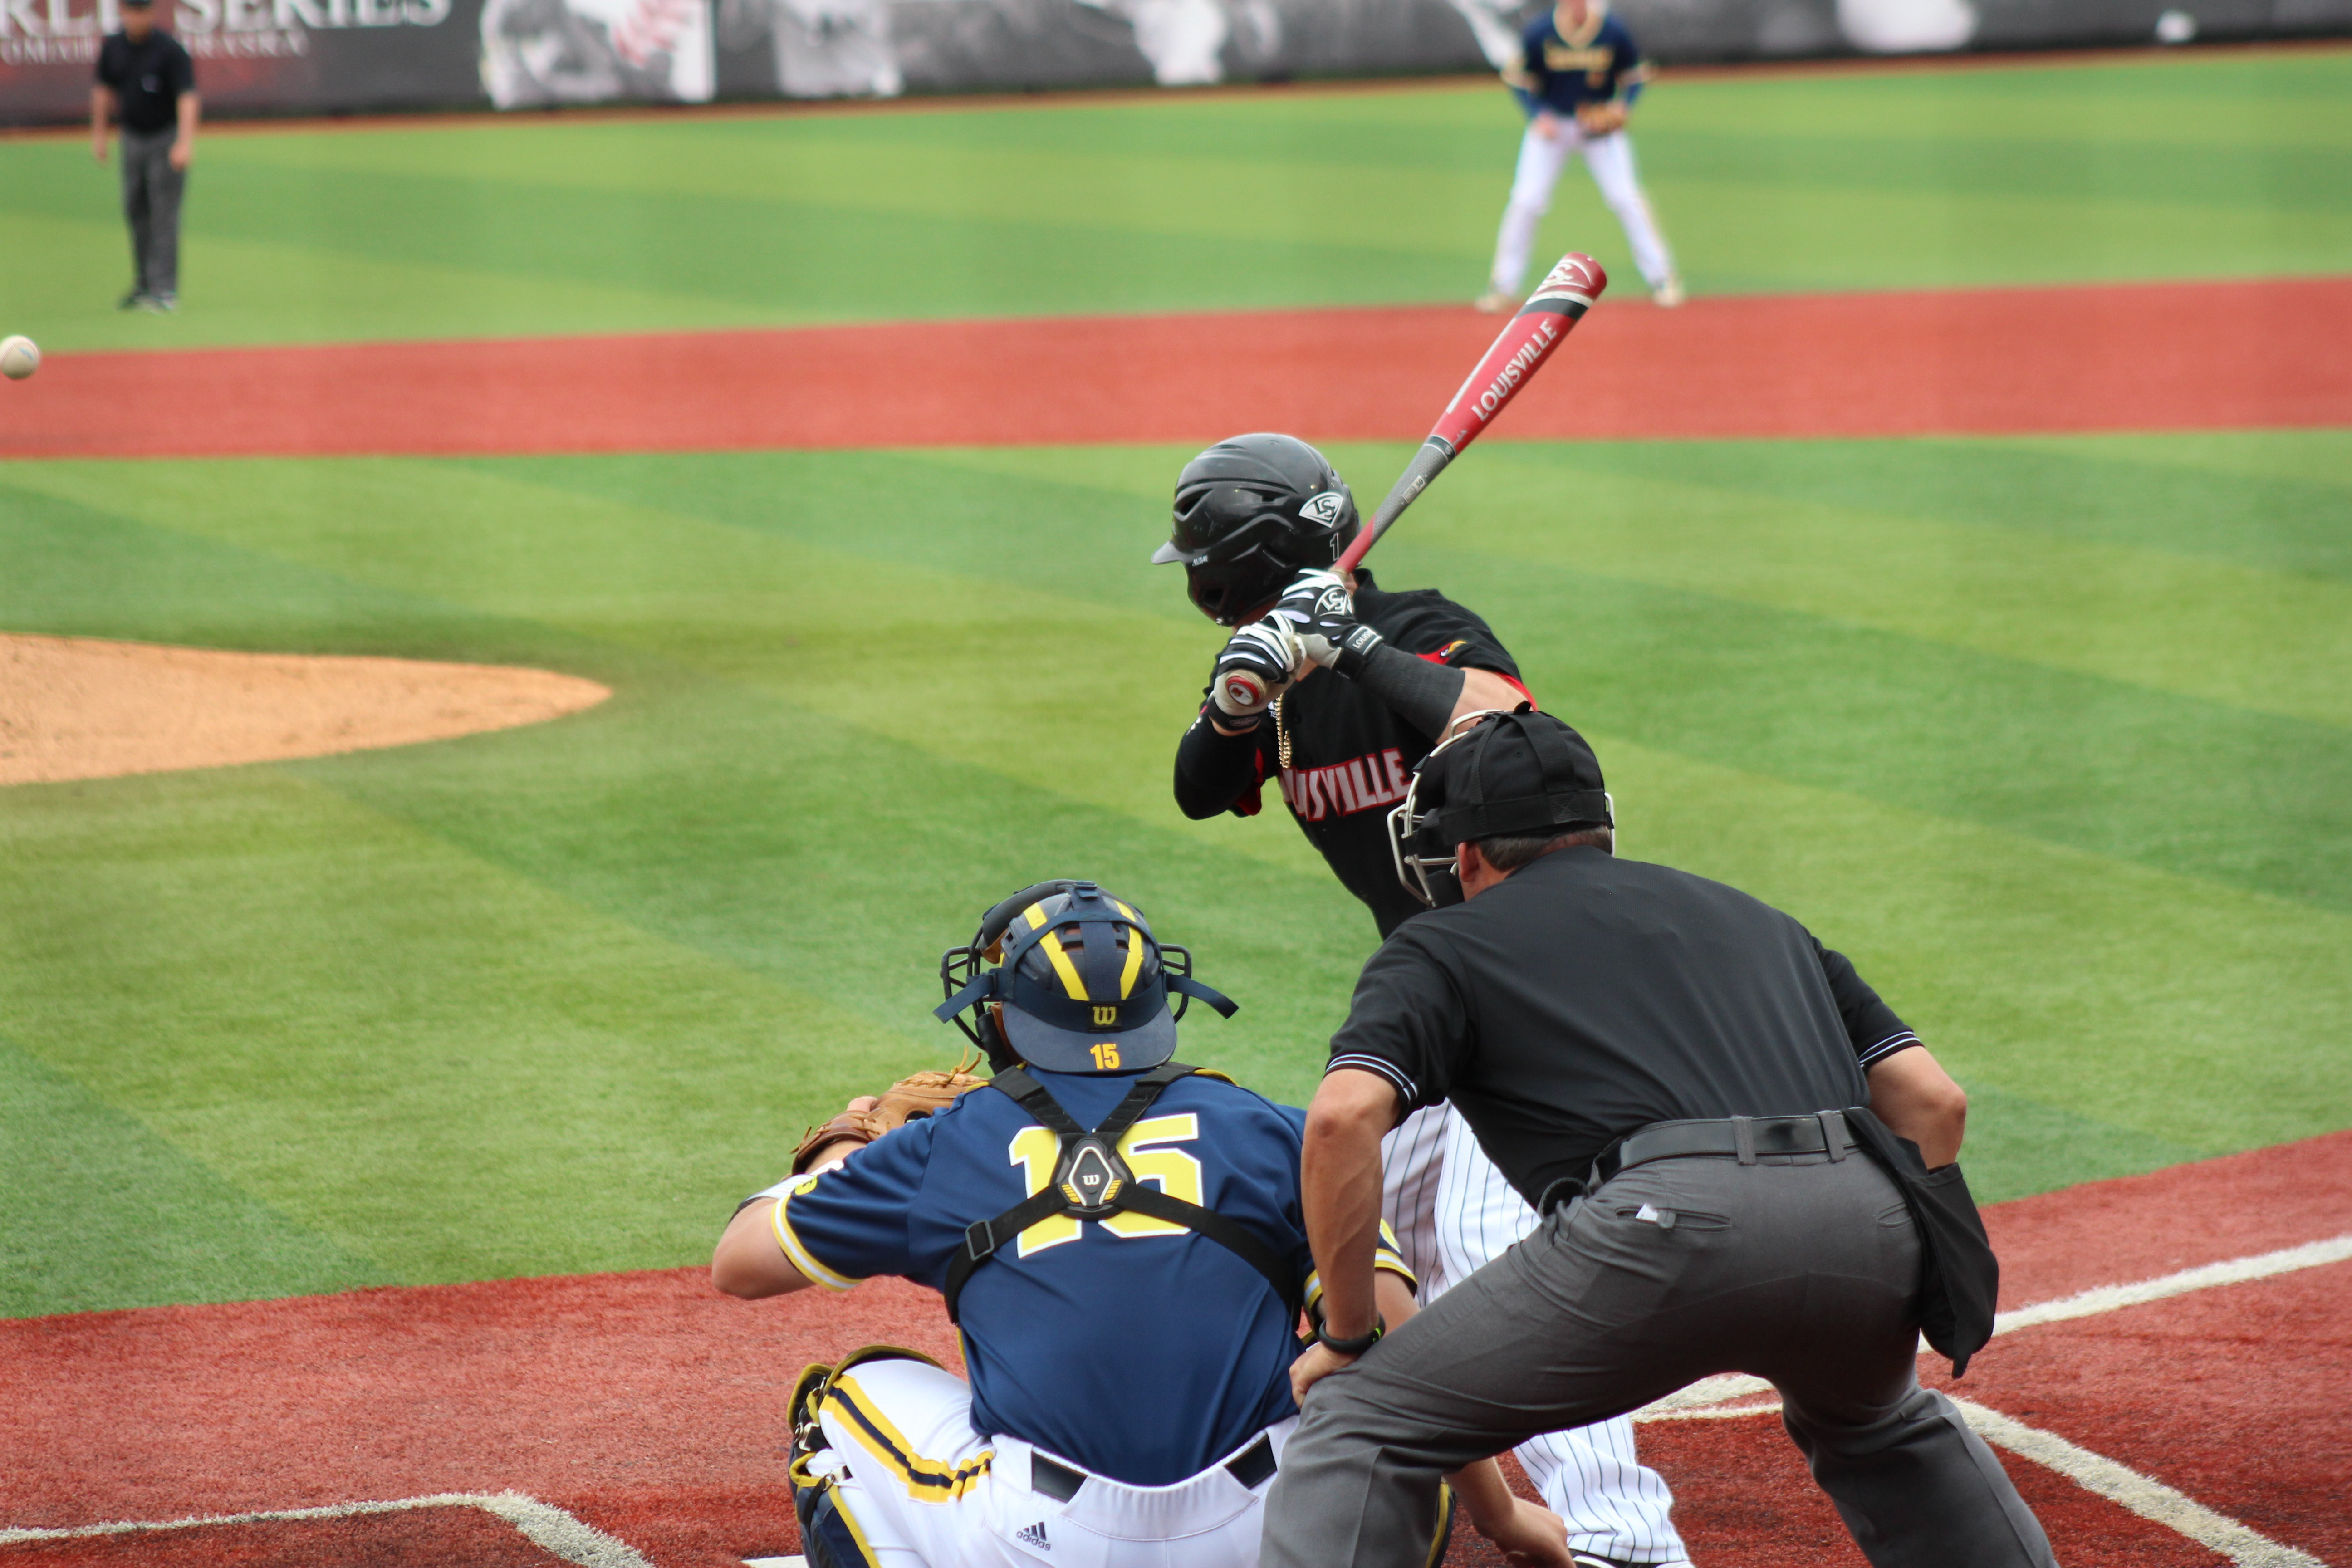 Louisville vs. Michigan 5-31-15 Jim Patterson Stadium Photo by Mark Blankenbaker